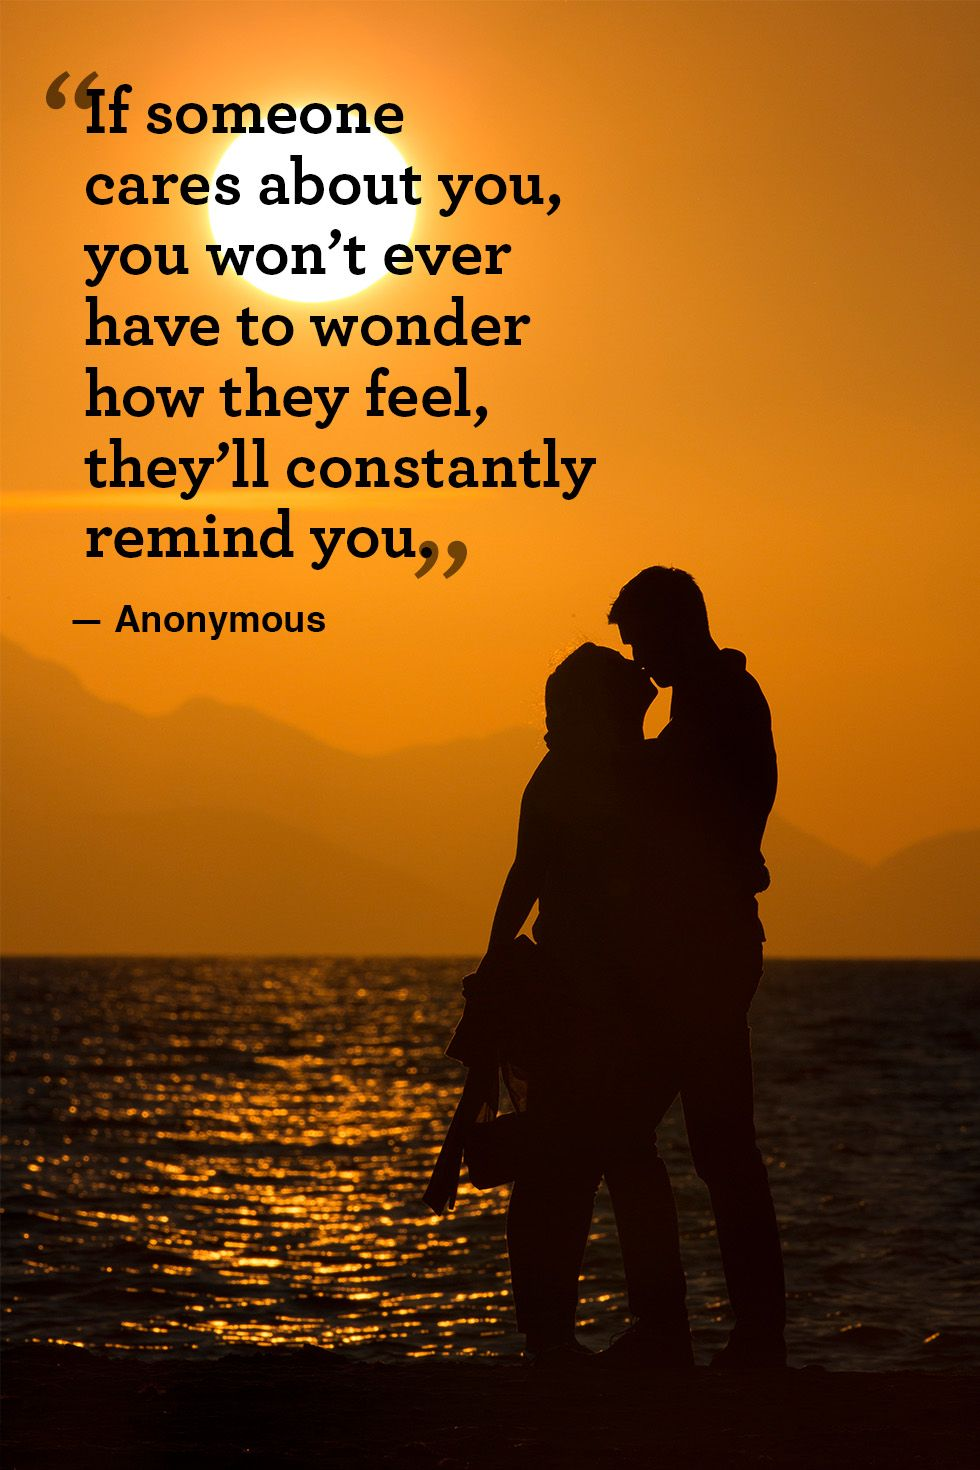 30 Cute Valentine's Day Quotes - Best Romantic Quotes About Love